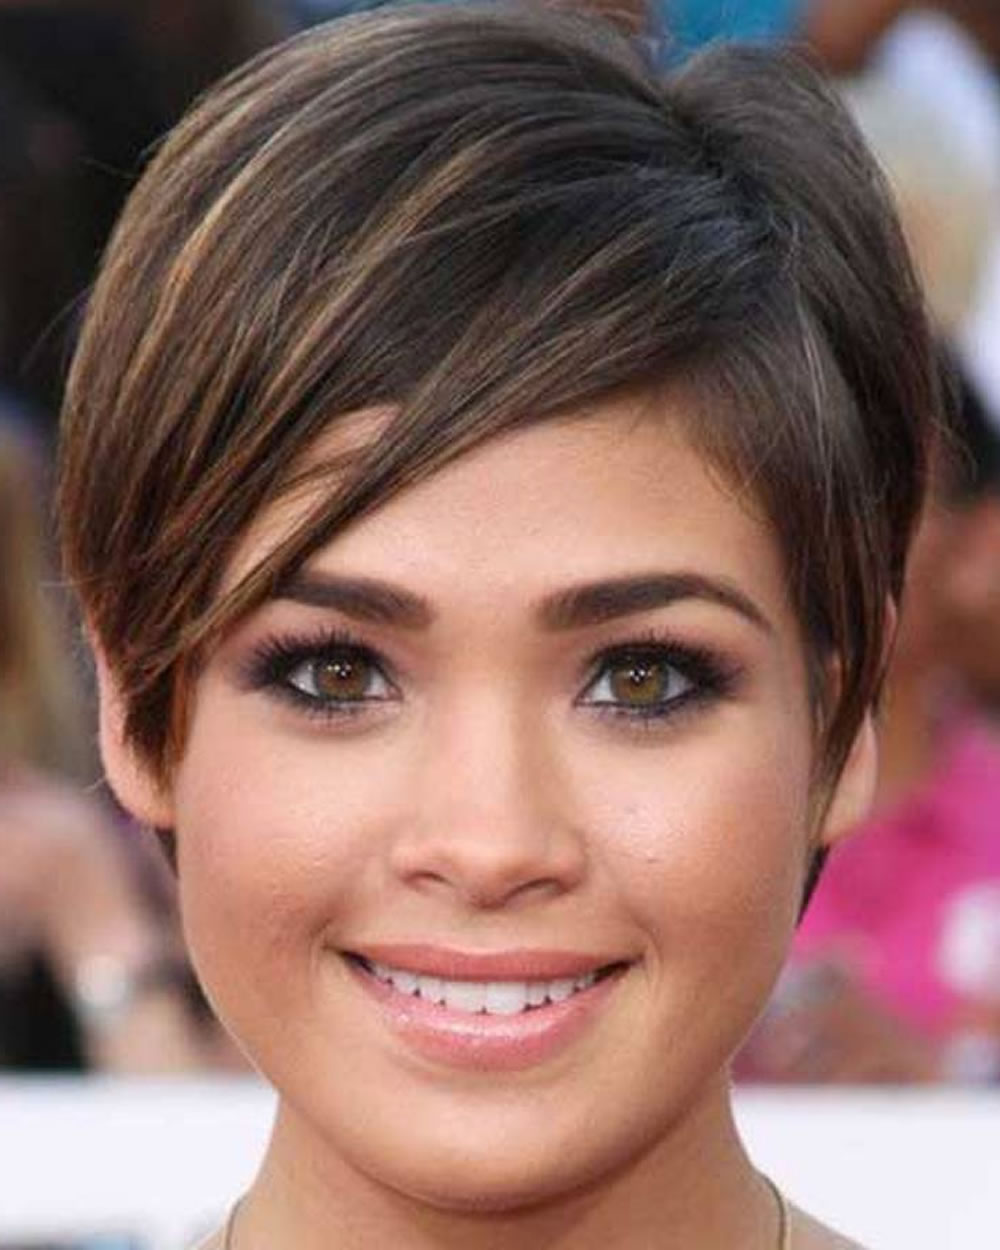 Top 10 Pixie Hairstyles For Round Faces